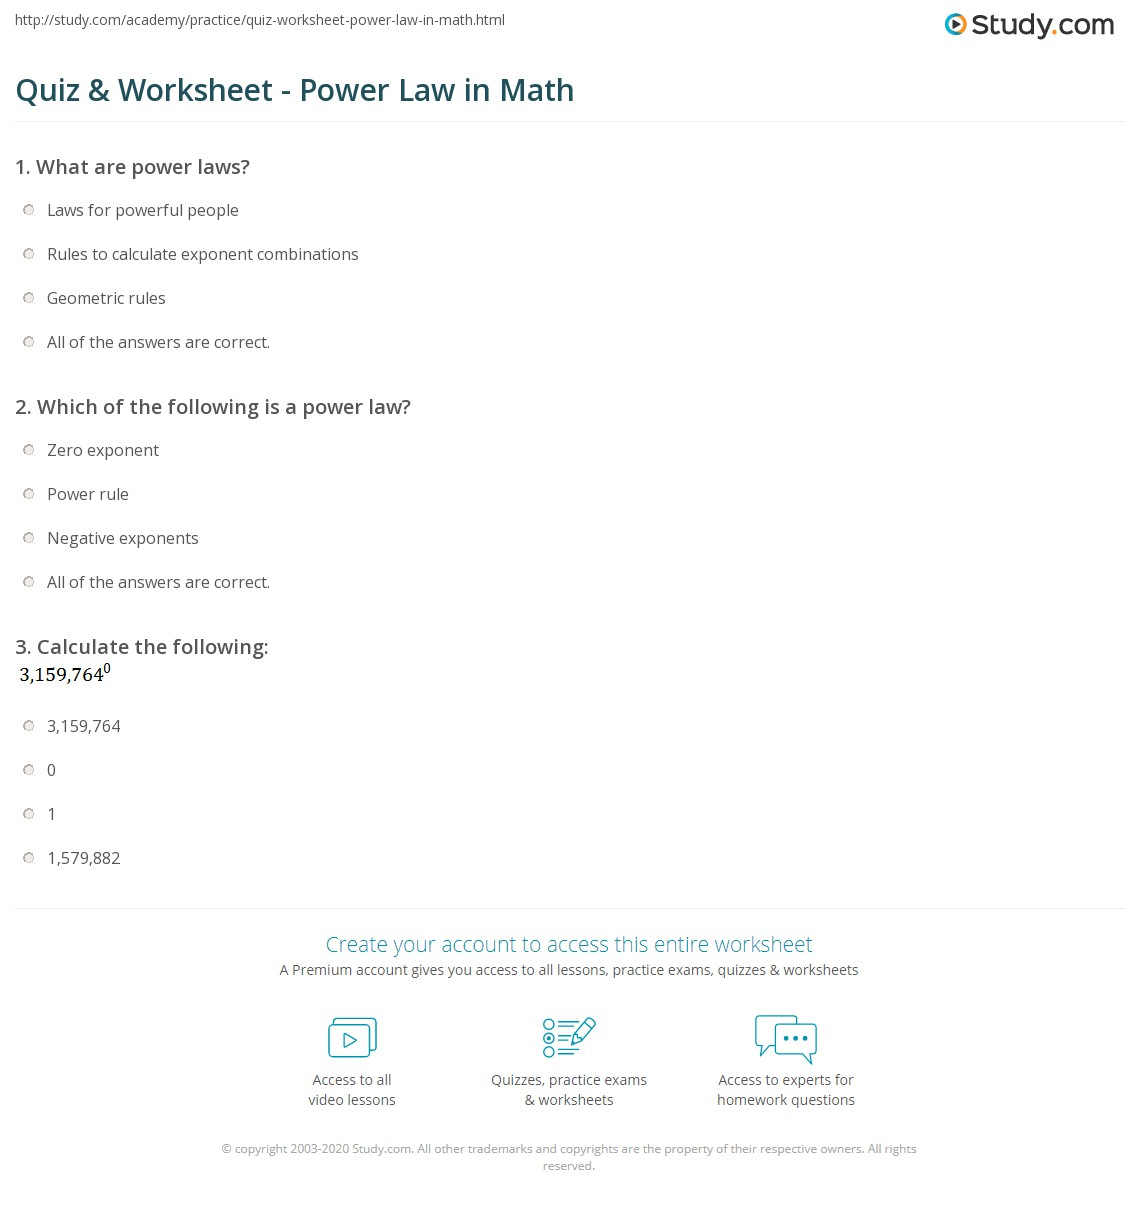 Quiz Worksheet Power Law In Math Study Com